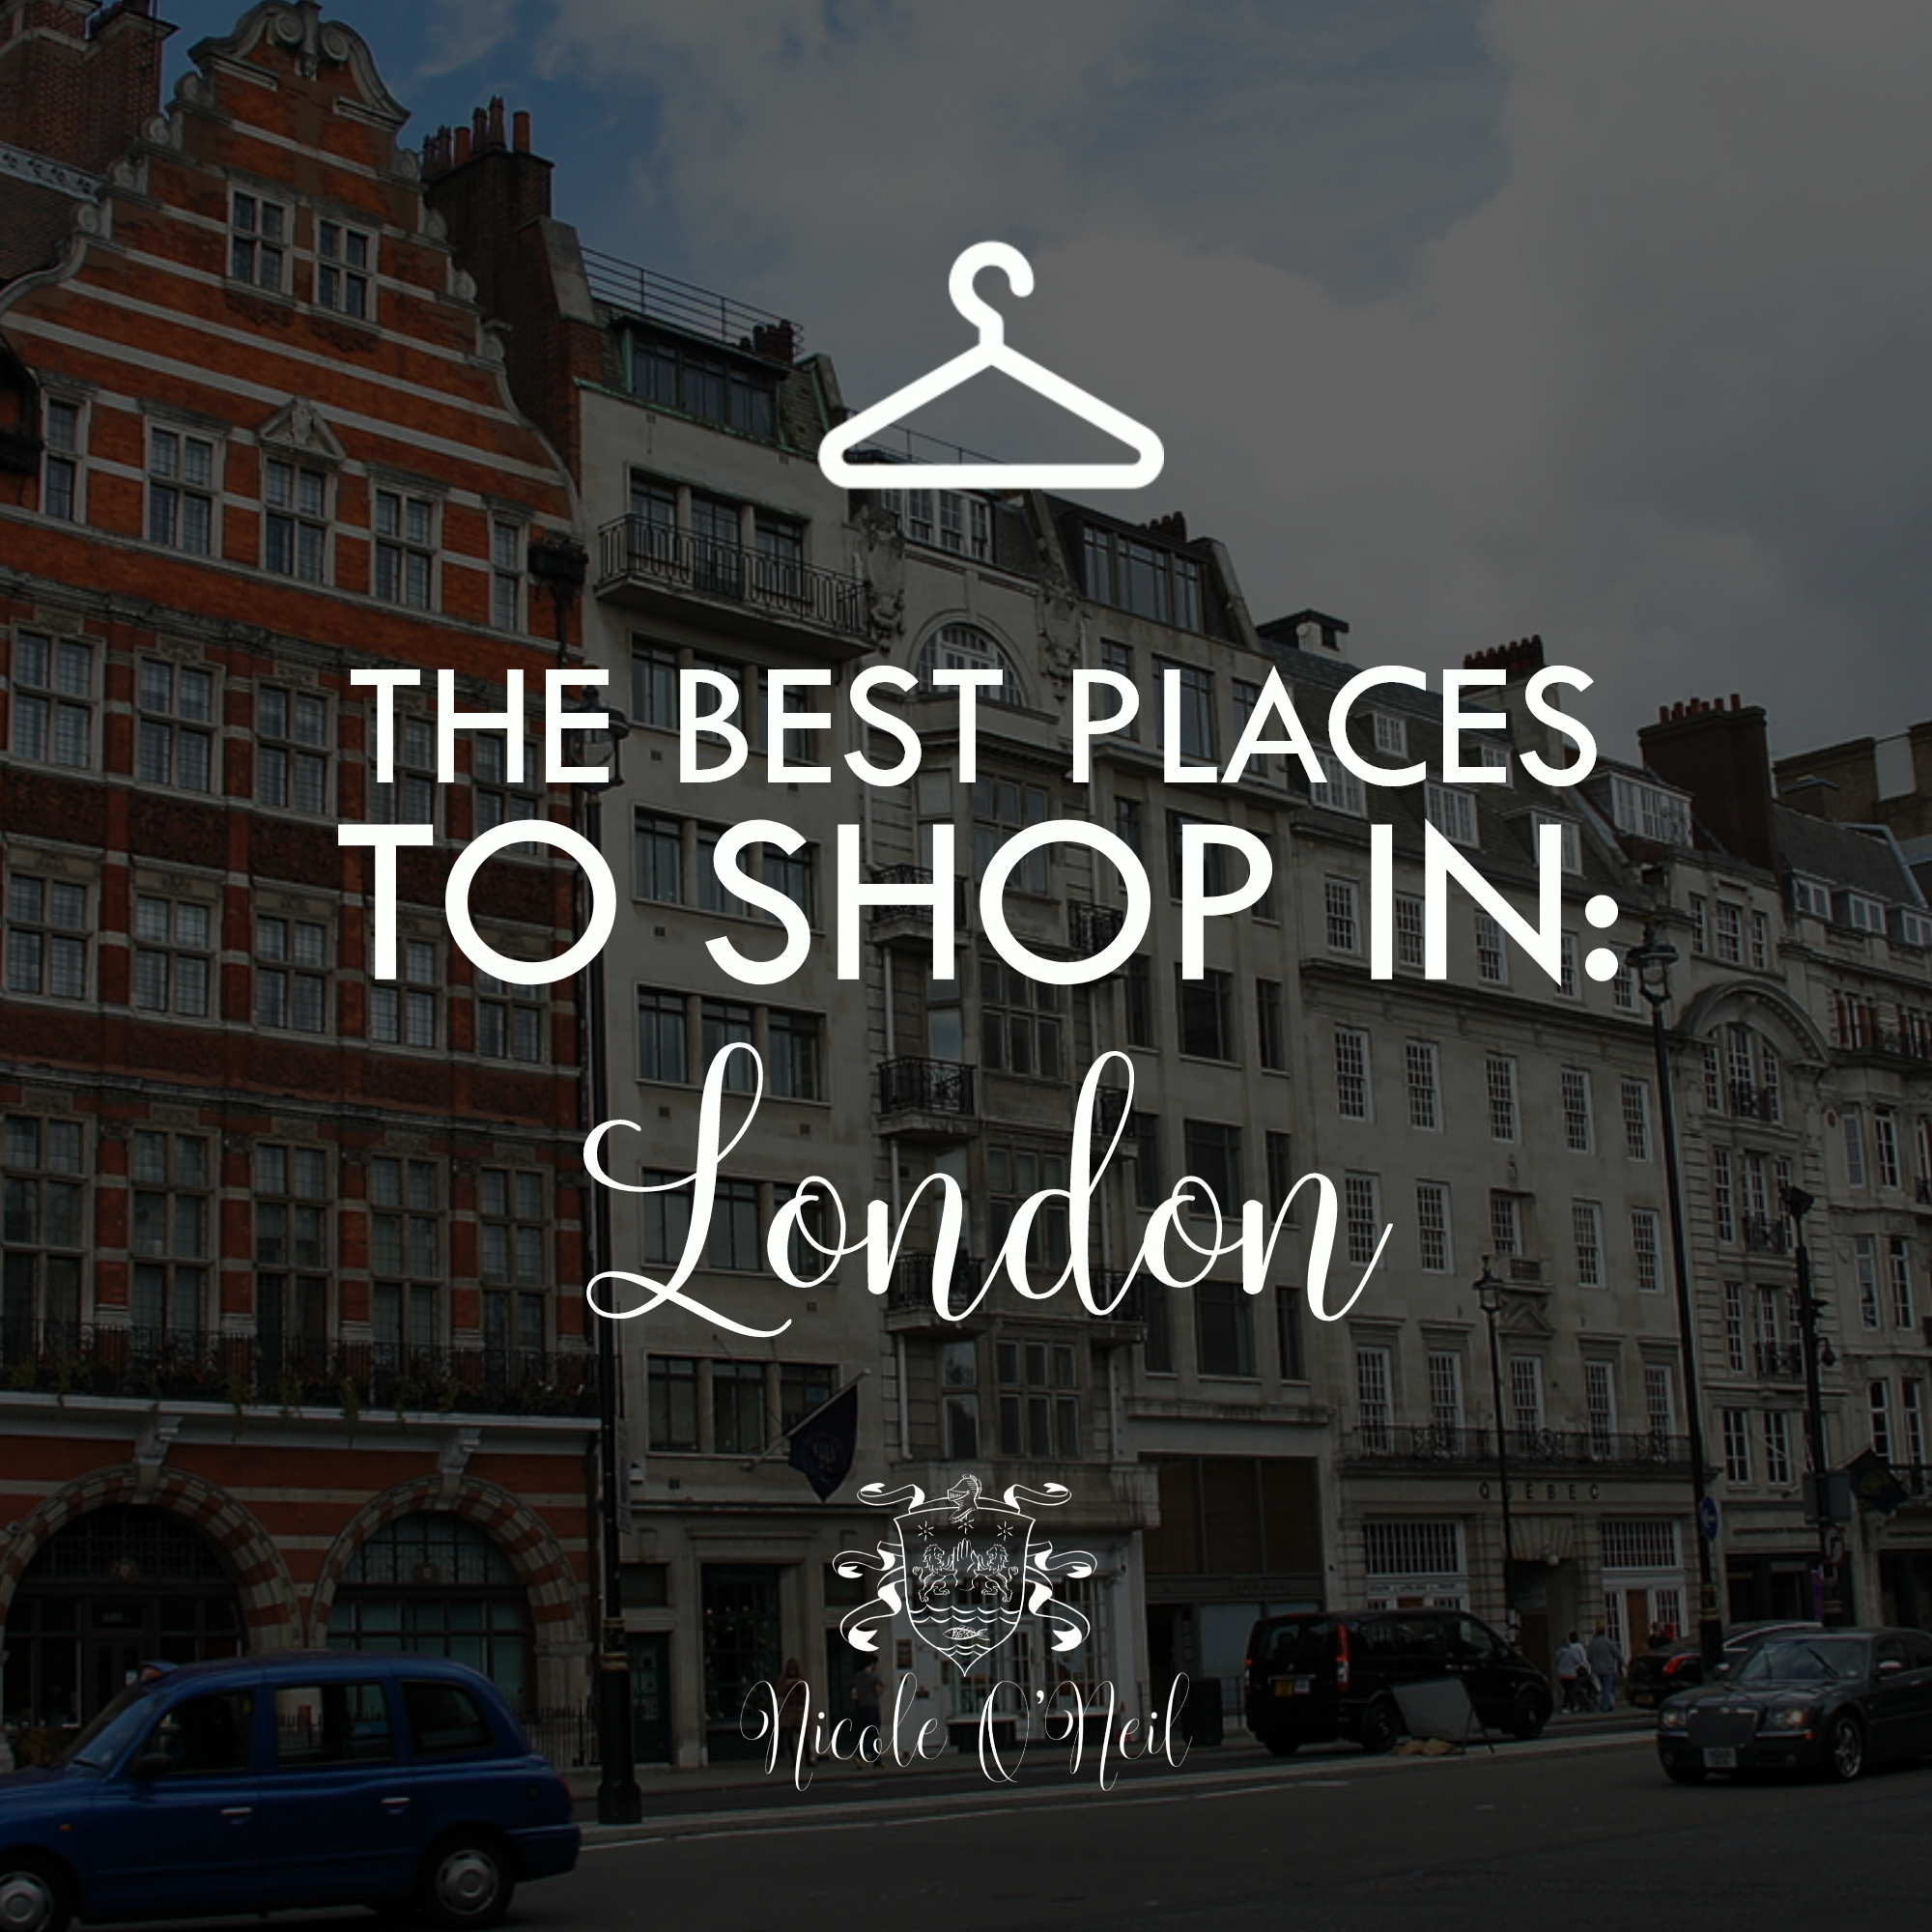 Where to Shop in London - The Best Places to Shop in London